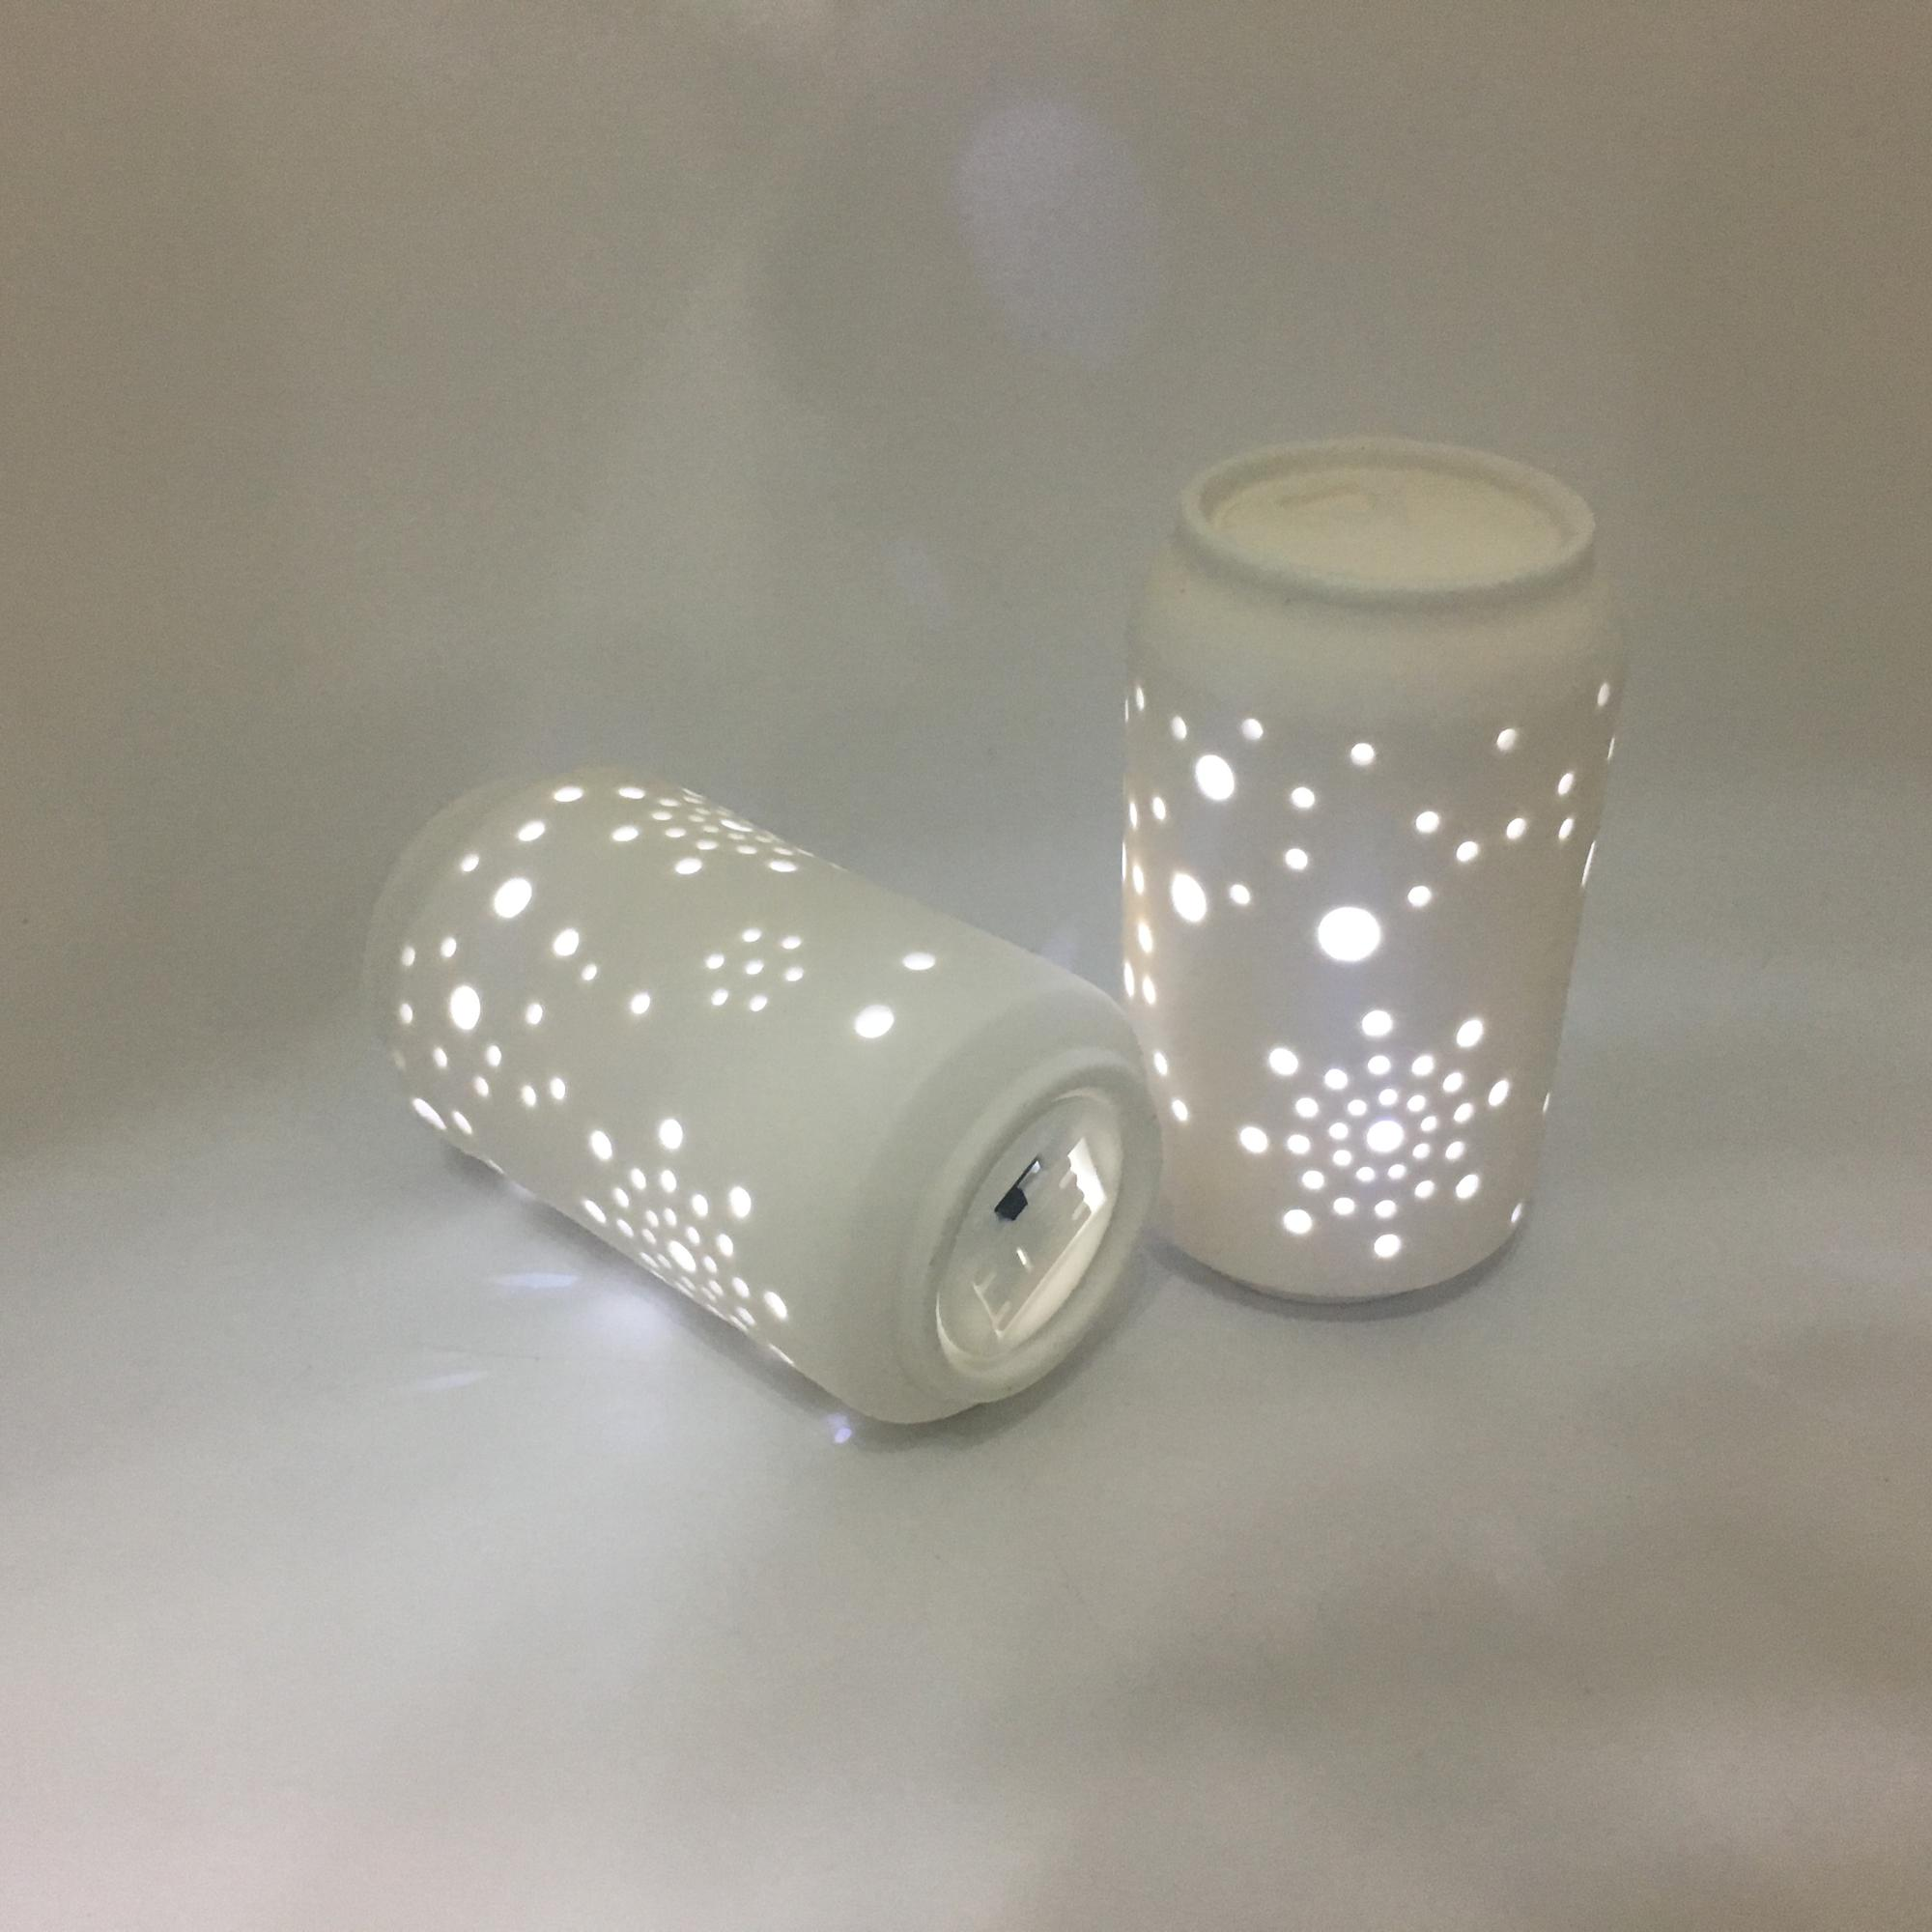 ceramic lighted decoration.jpg